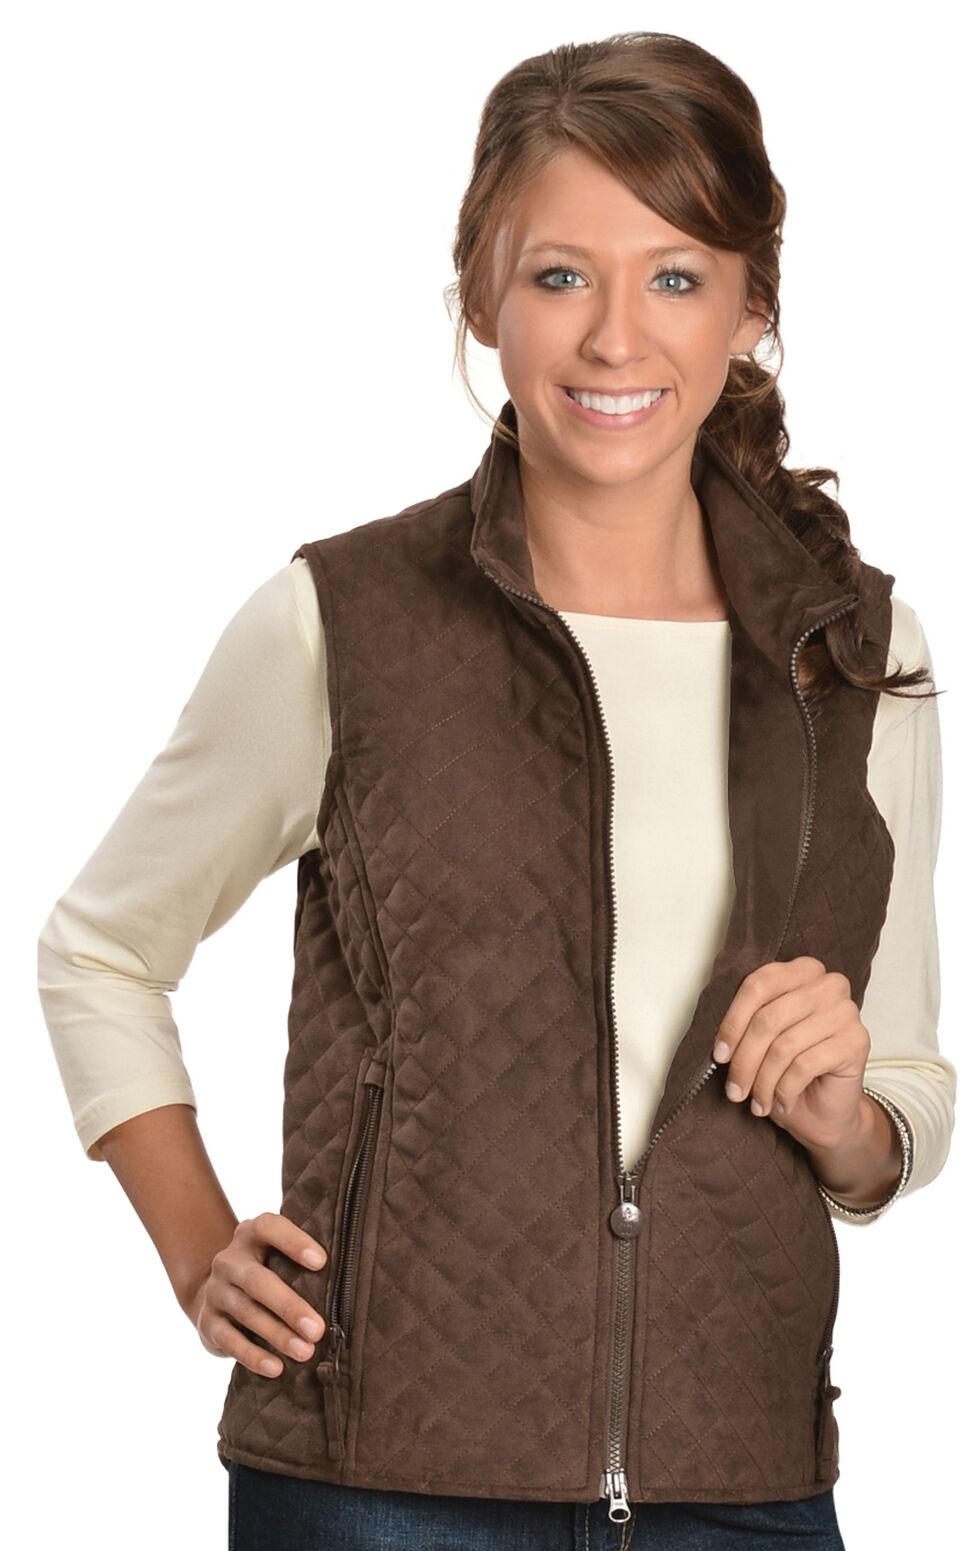 Outback Trading Co. Grand Prix Vest, , hi-res